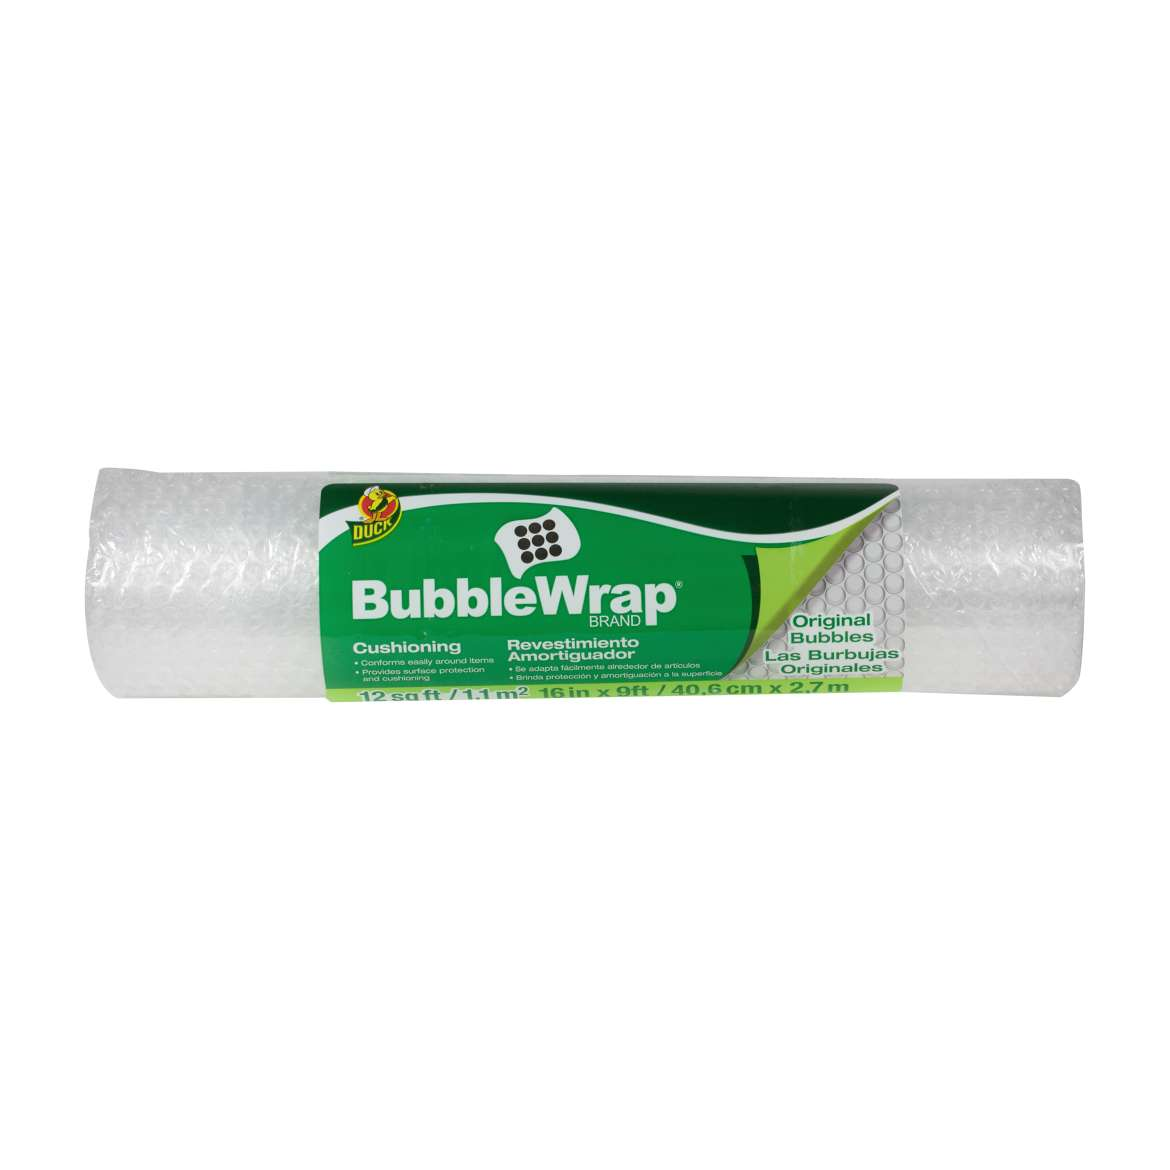 Duck® Brand Original Bubble Wrap® Cushioning - Clear, 16 in. x 9 ft. Image